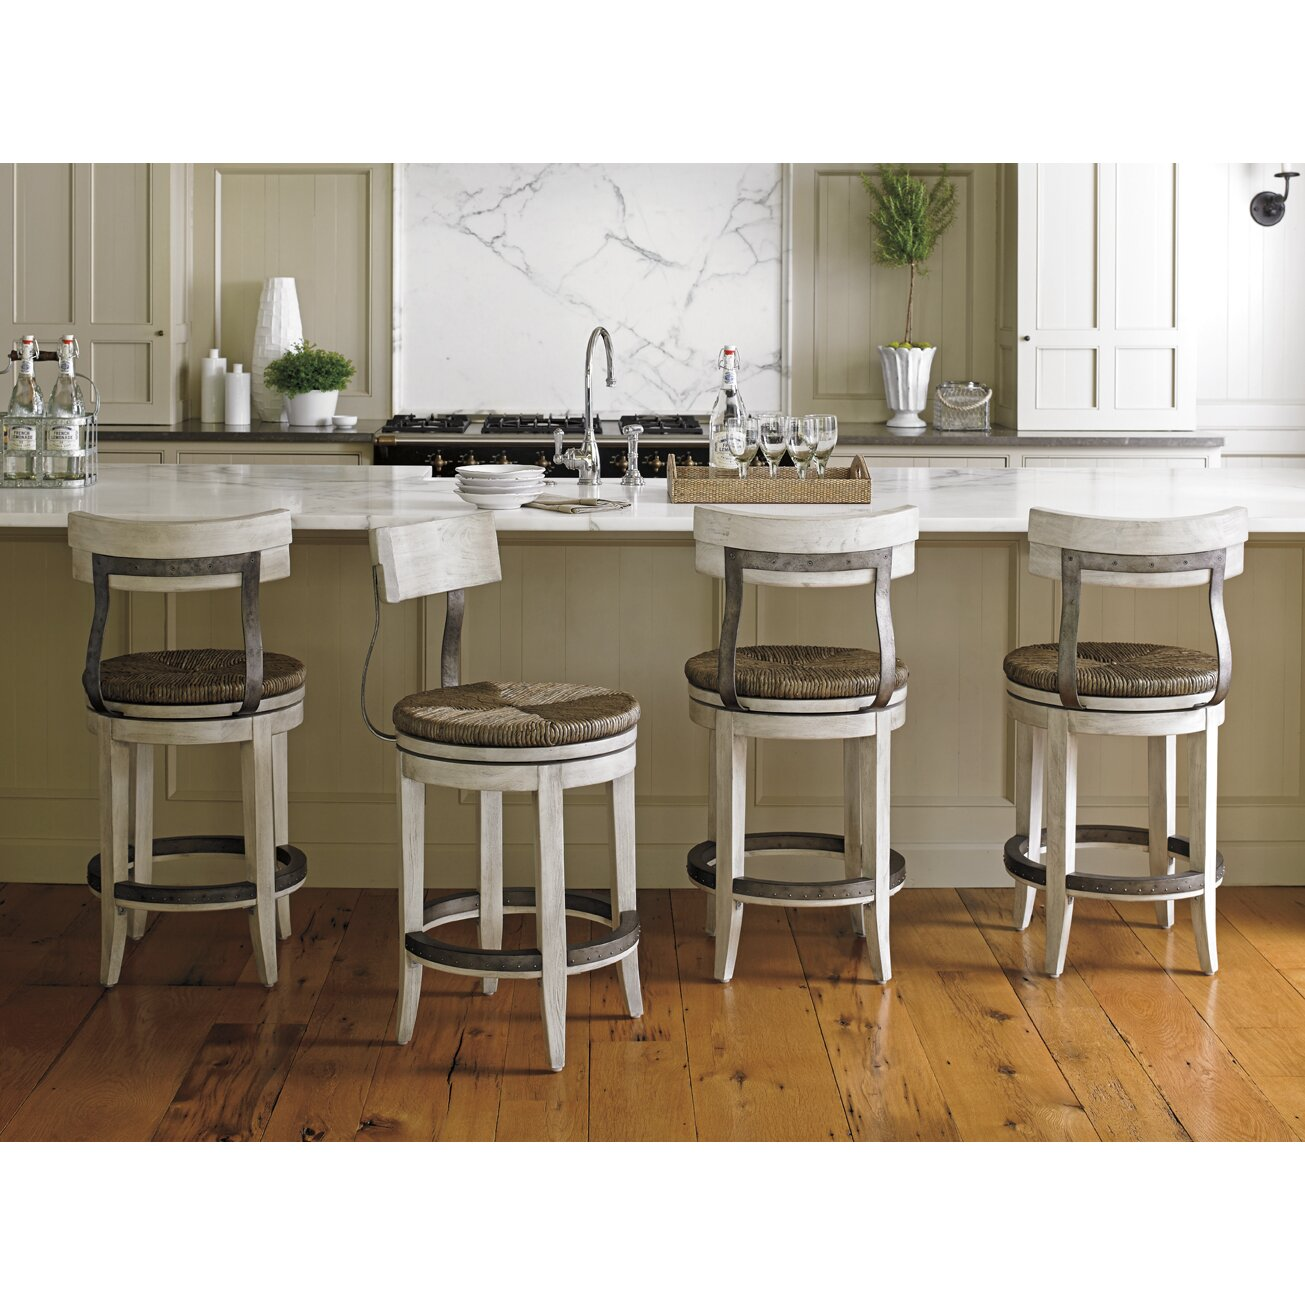 Lexington Oyster Bay 24 Quot Swivel Bar Stool Amp Reviews Wayfair